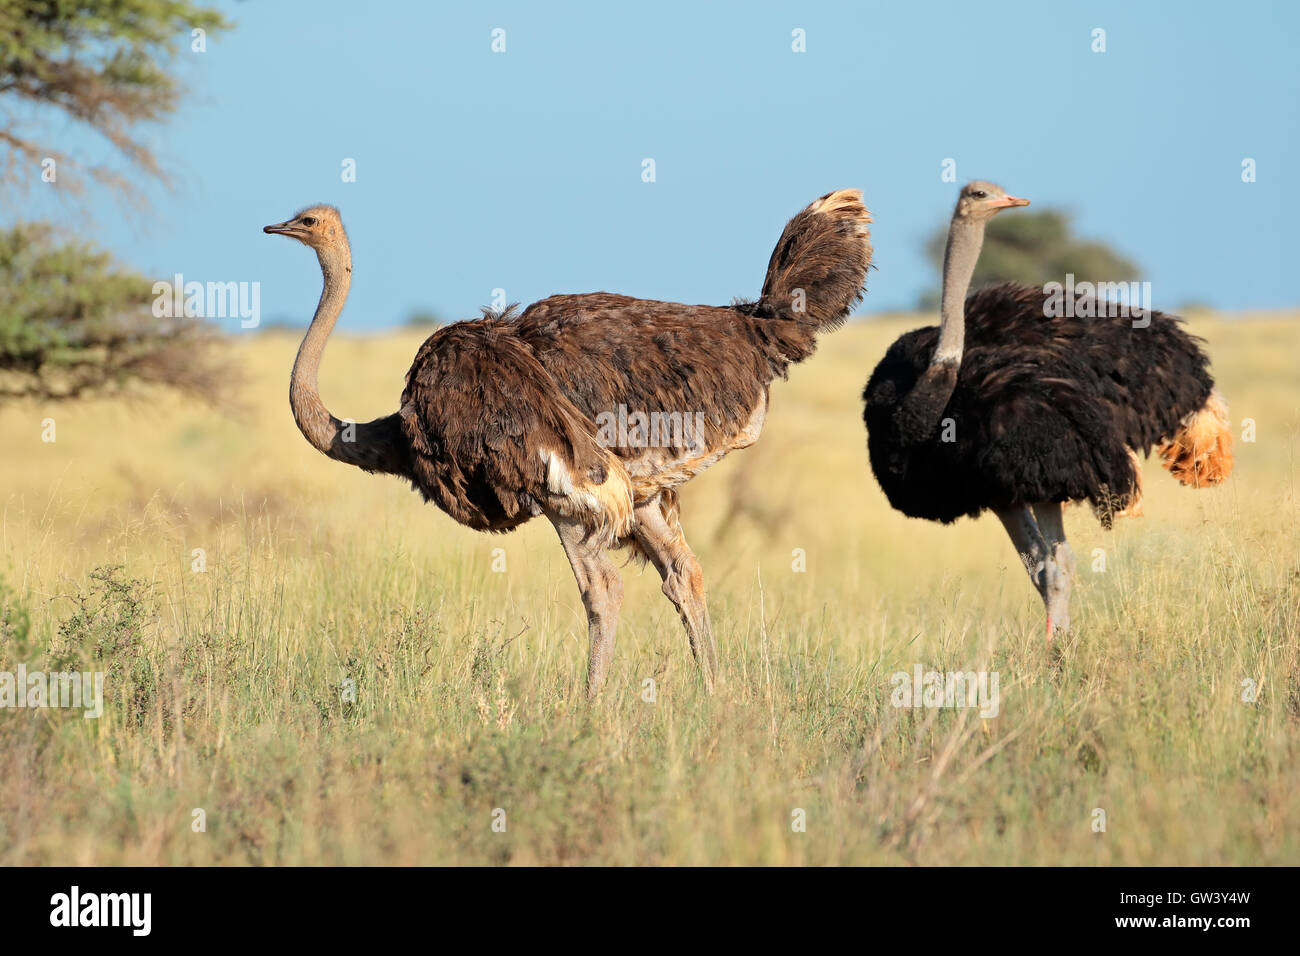 Two ostriches (Struthio camelus) in natural, Mokala National Park, South Africa - Stock Image